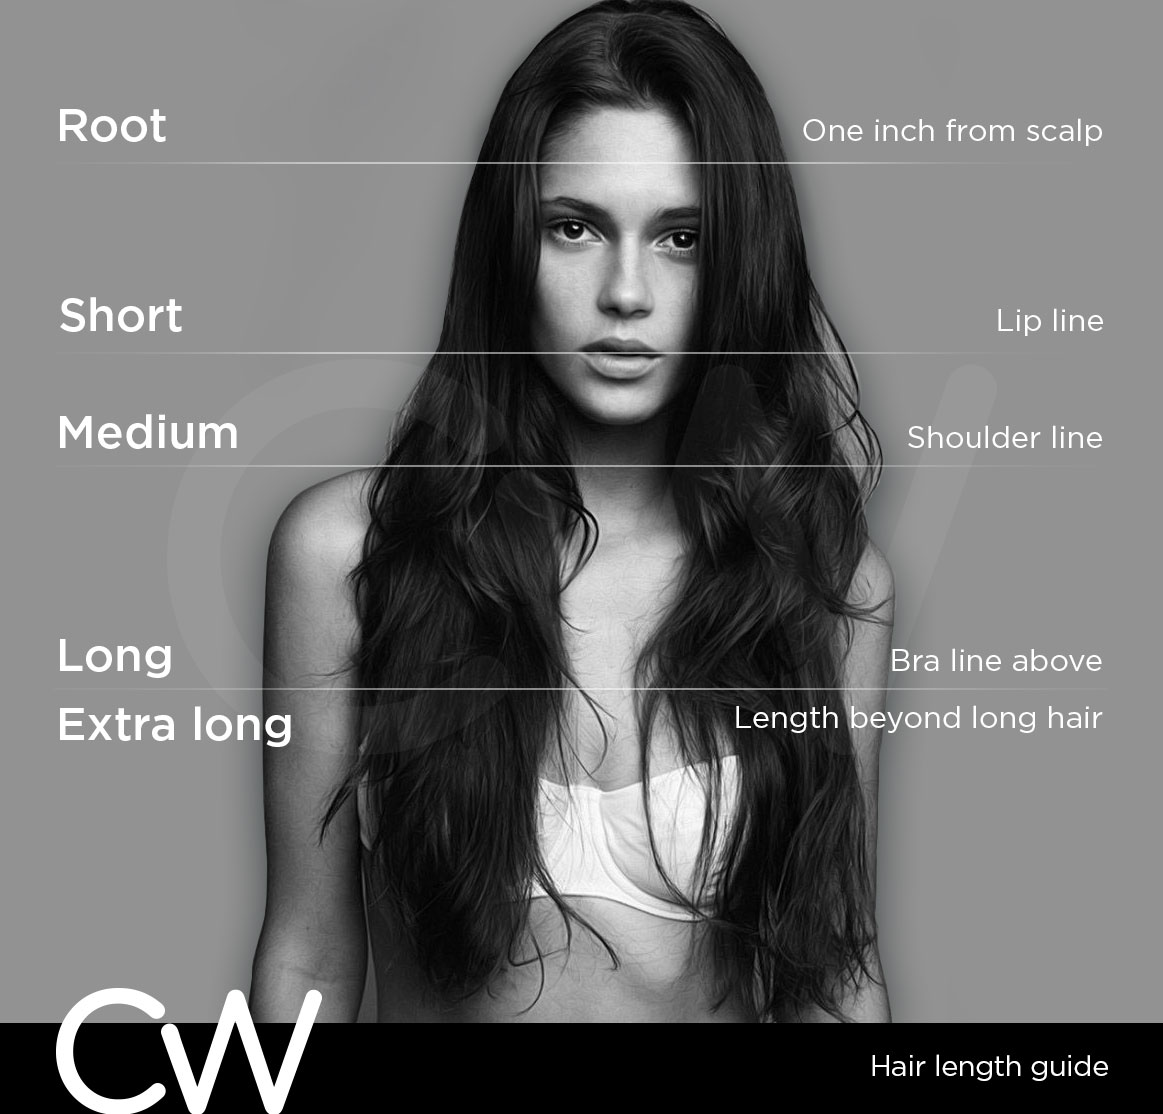 Hair Length Guide Catwalk Salon Gladesville Australia